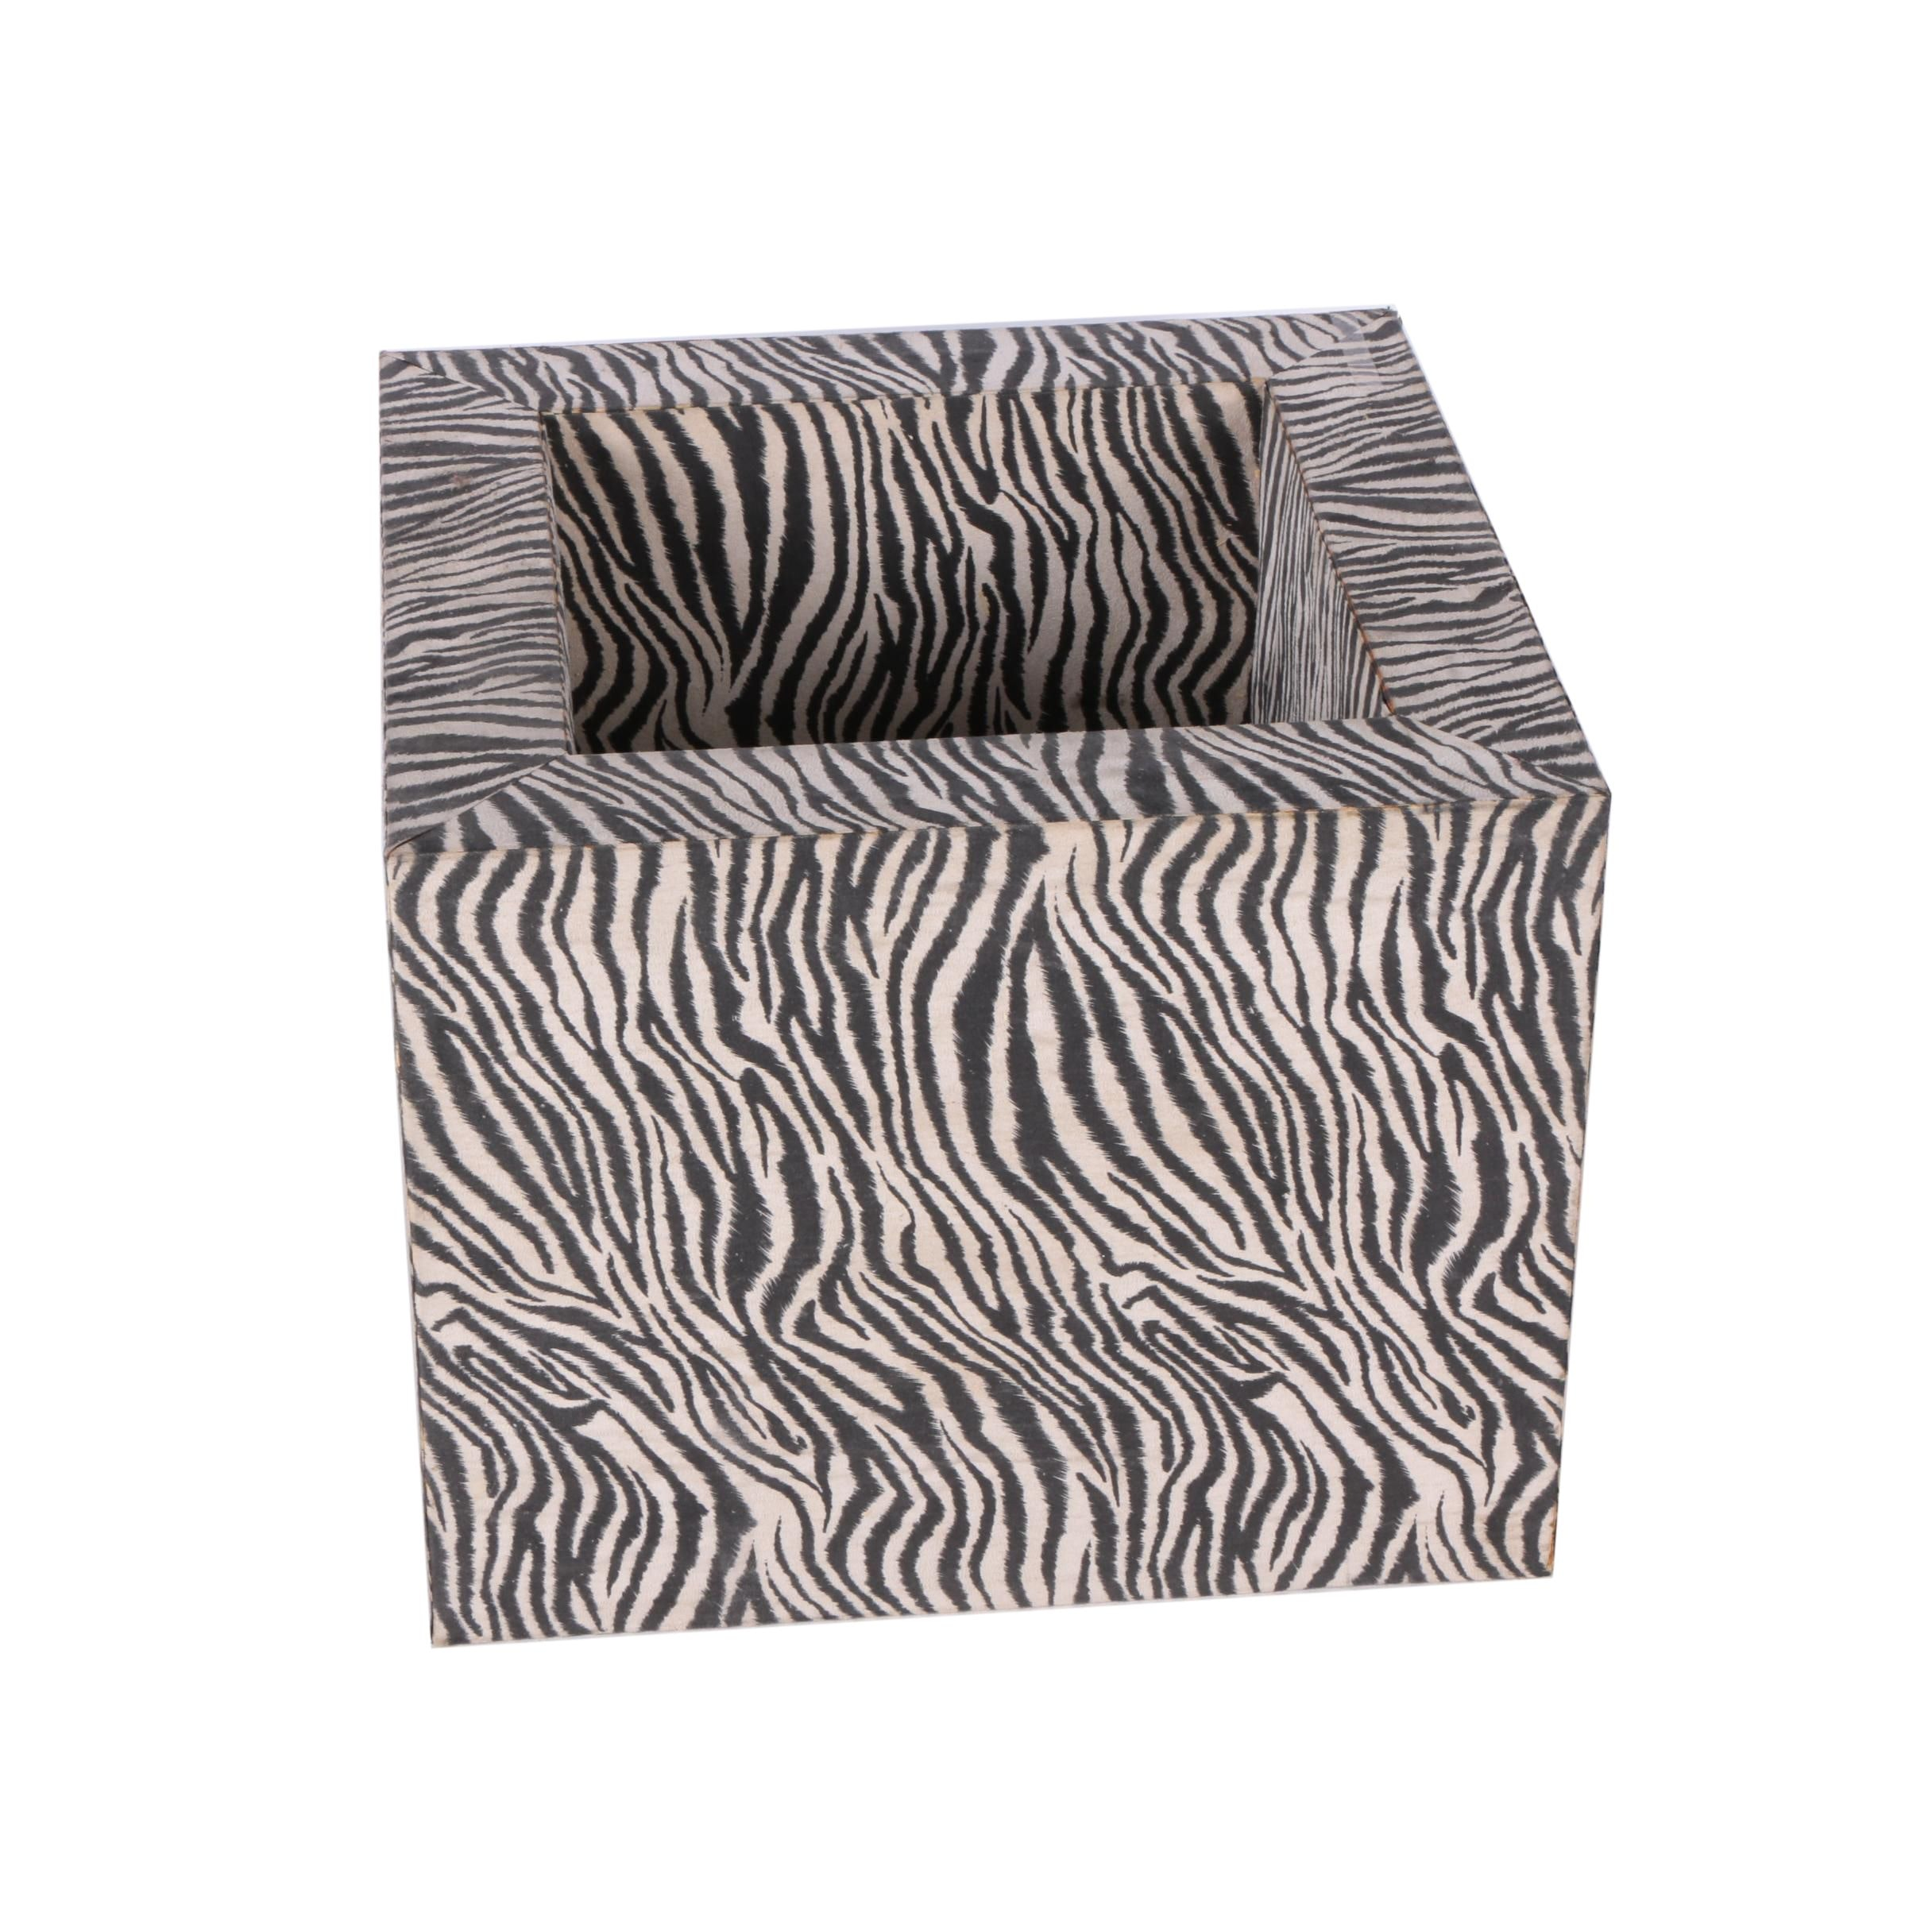 Open Cube Side Table in Faux Zebra